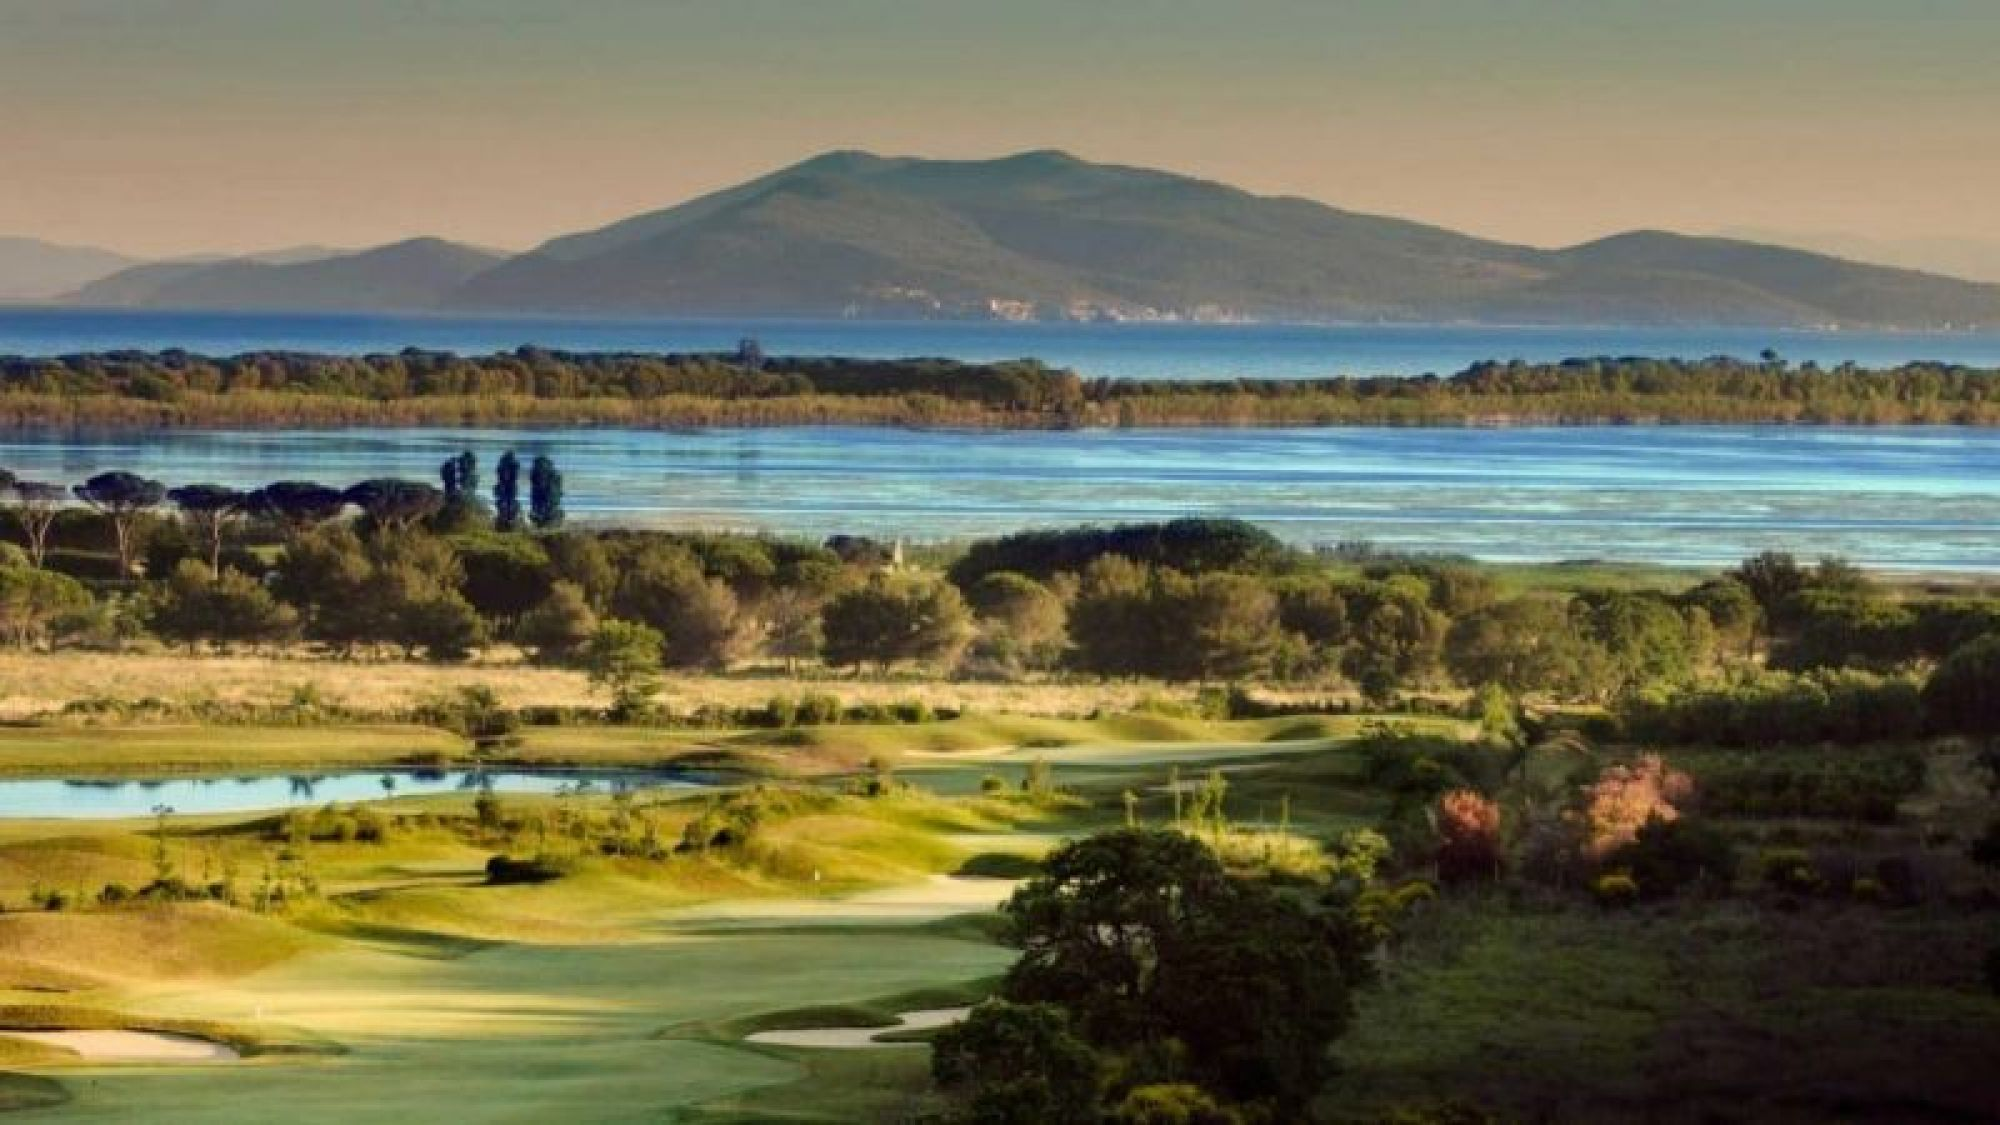 Argentario Golf Club has lots of the most desirable golf course in Tuscany